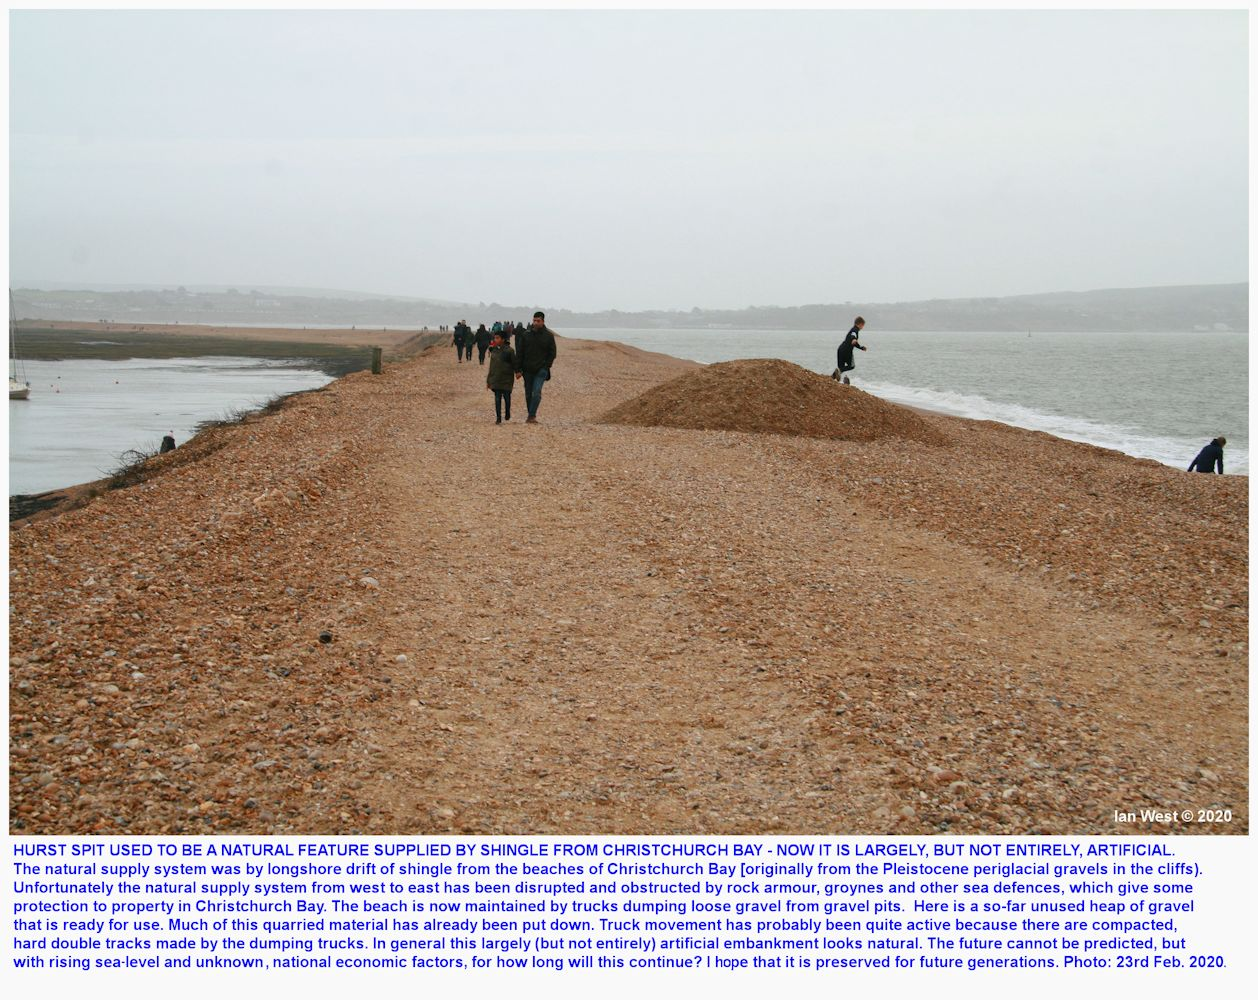 Hurst Spit, originally a natural shingle spit, supplied with pebbles from the cliffs of Christchurch Bay, is now largely composed of artificially dumped, quarried gravel, and it is seen here on the 23rd February 2020